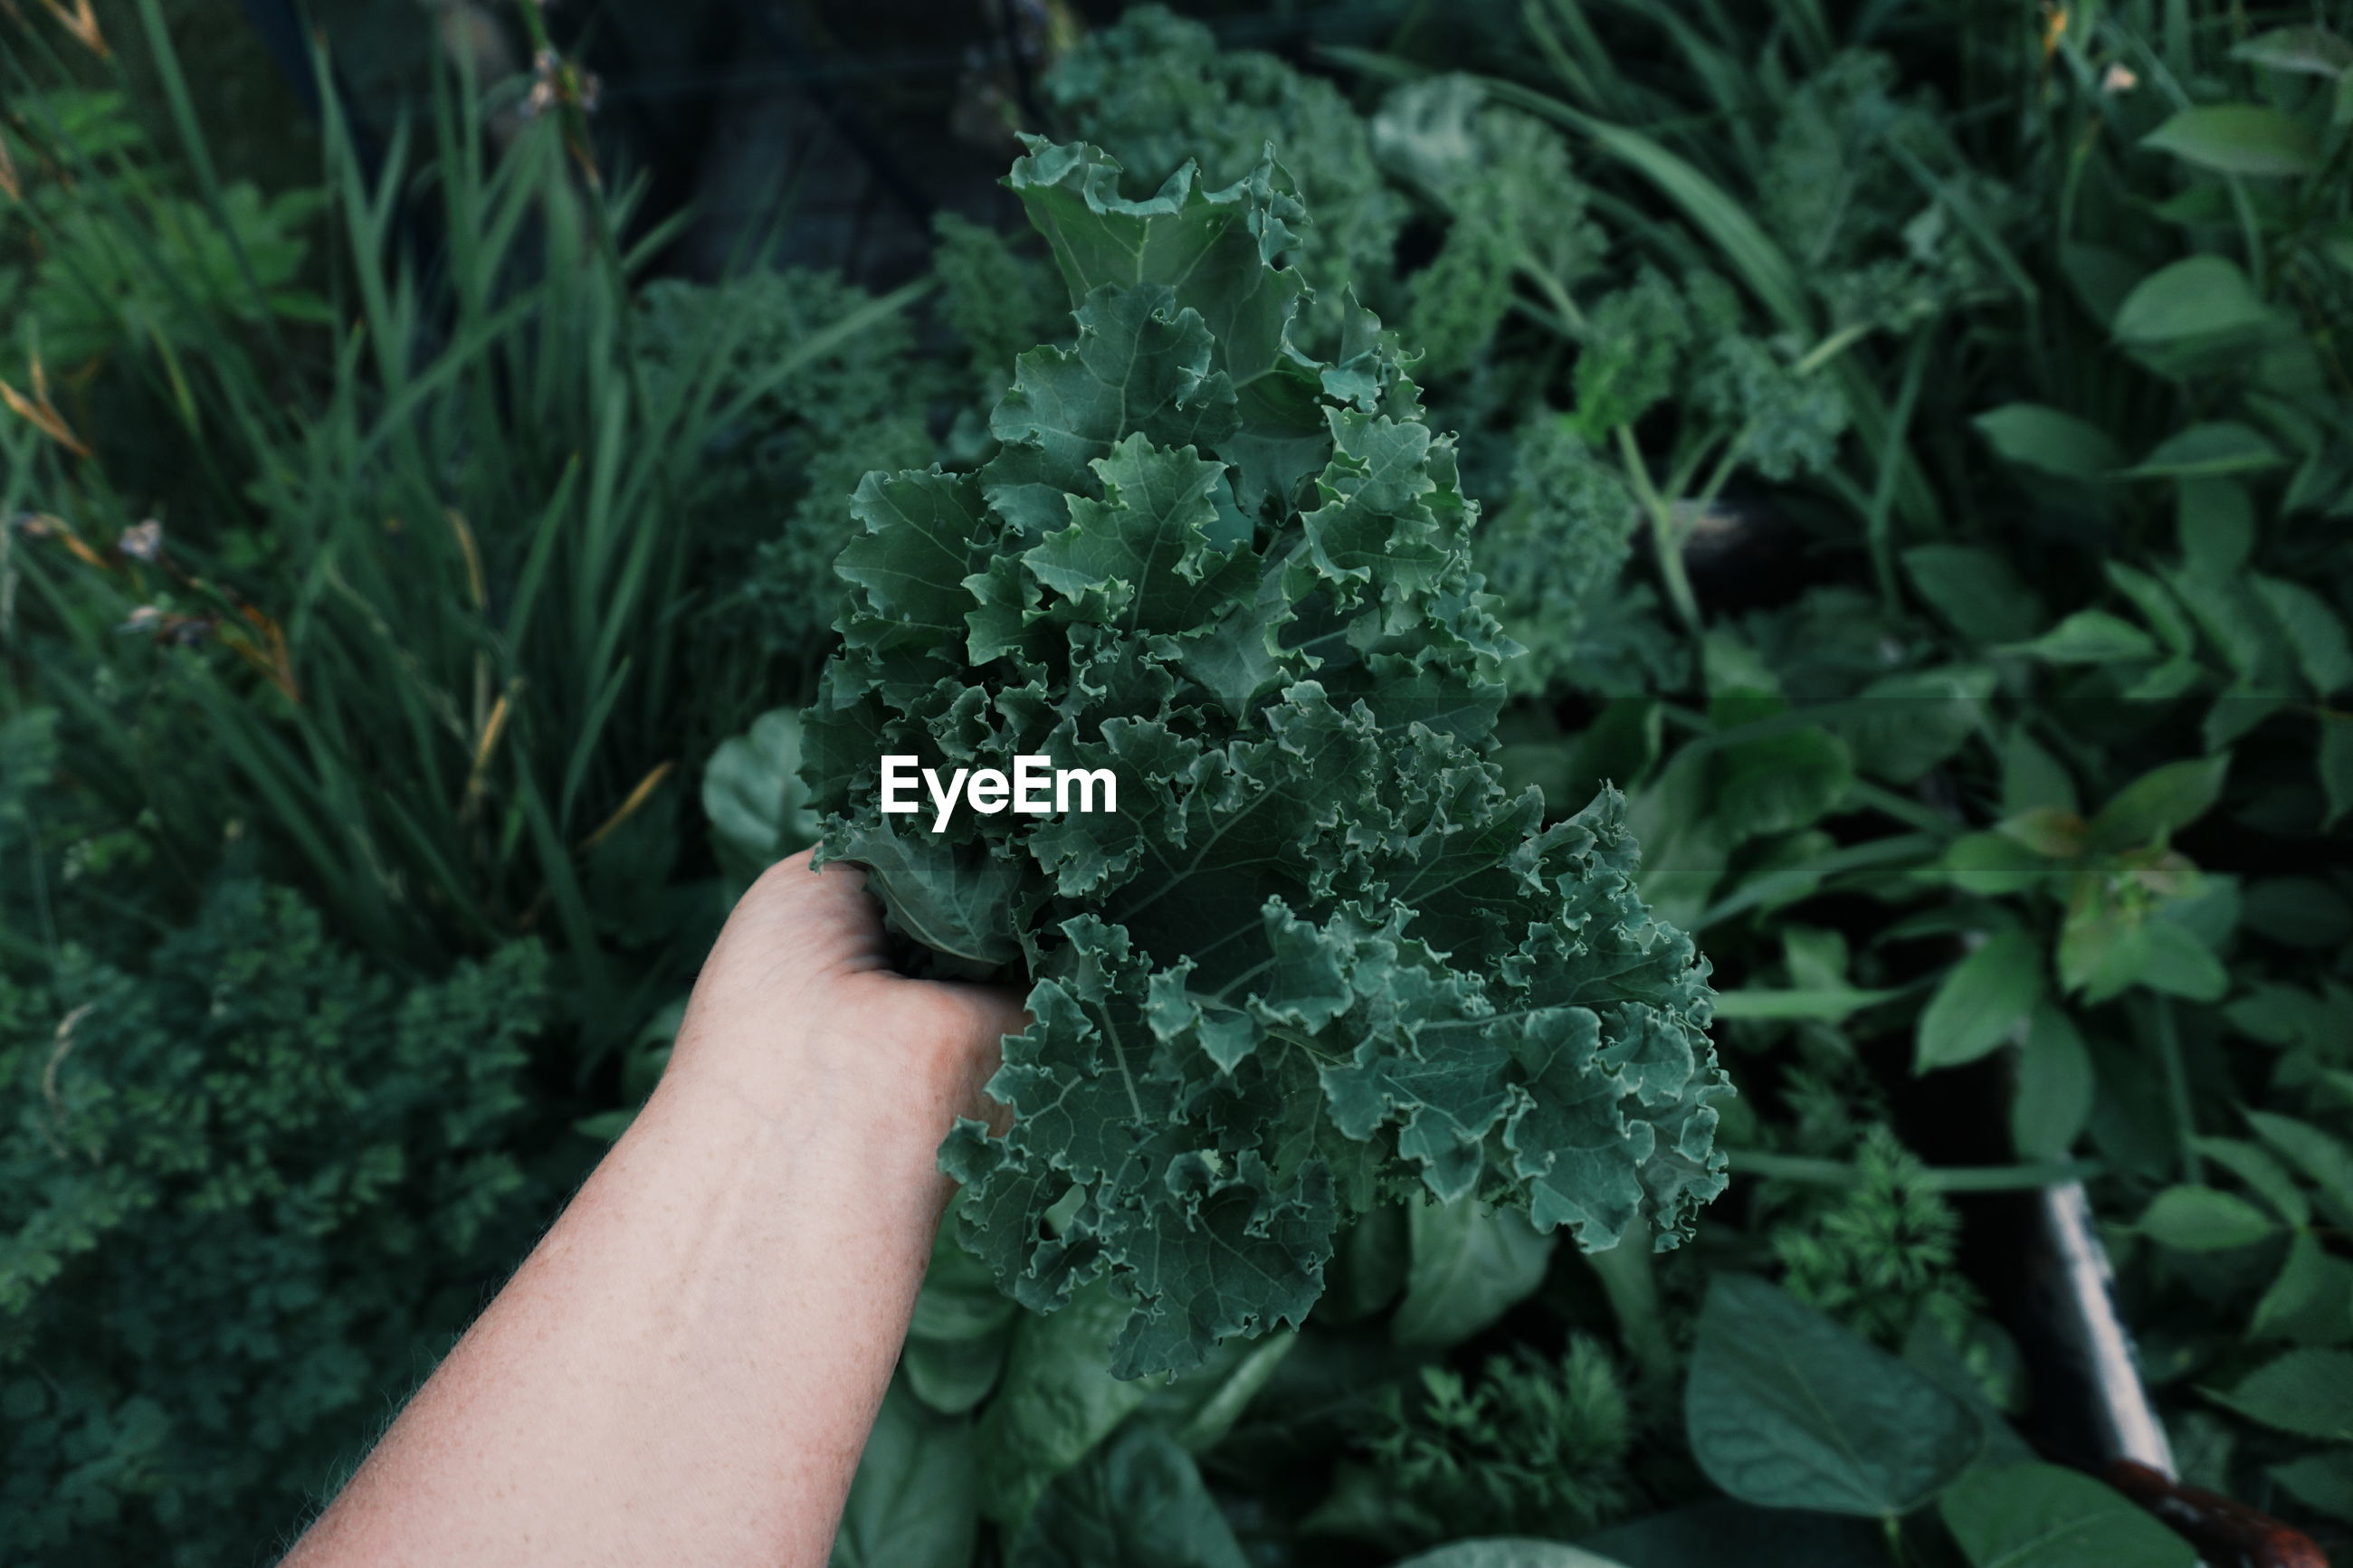 Cropped image of hand holding leaf vegetable by plants